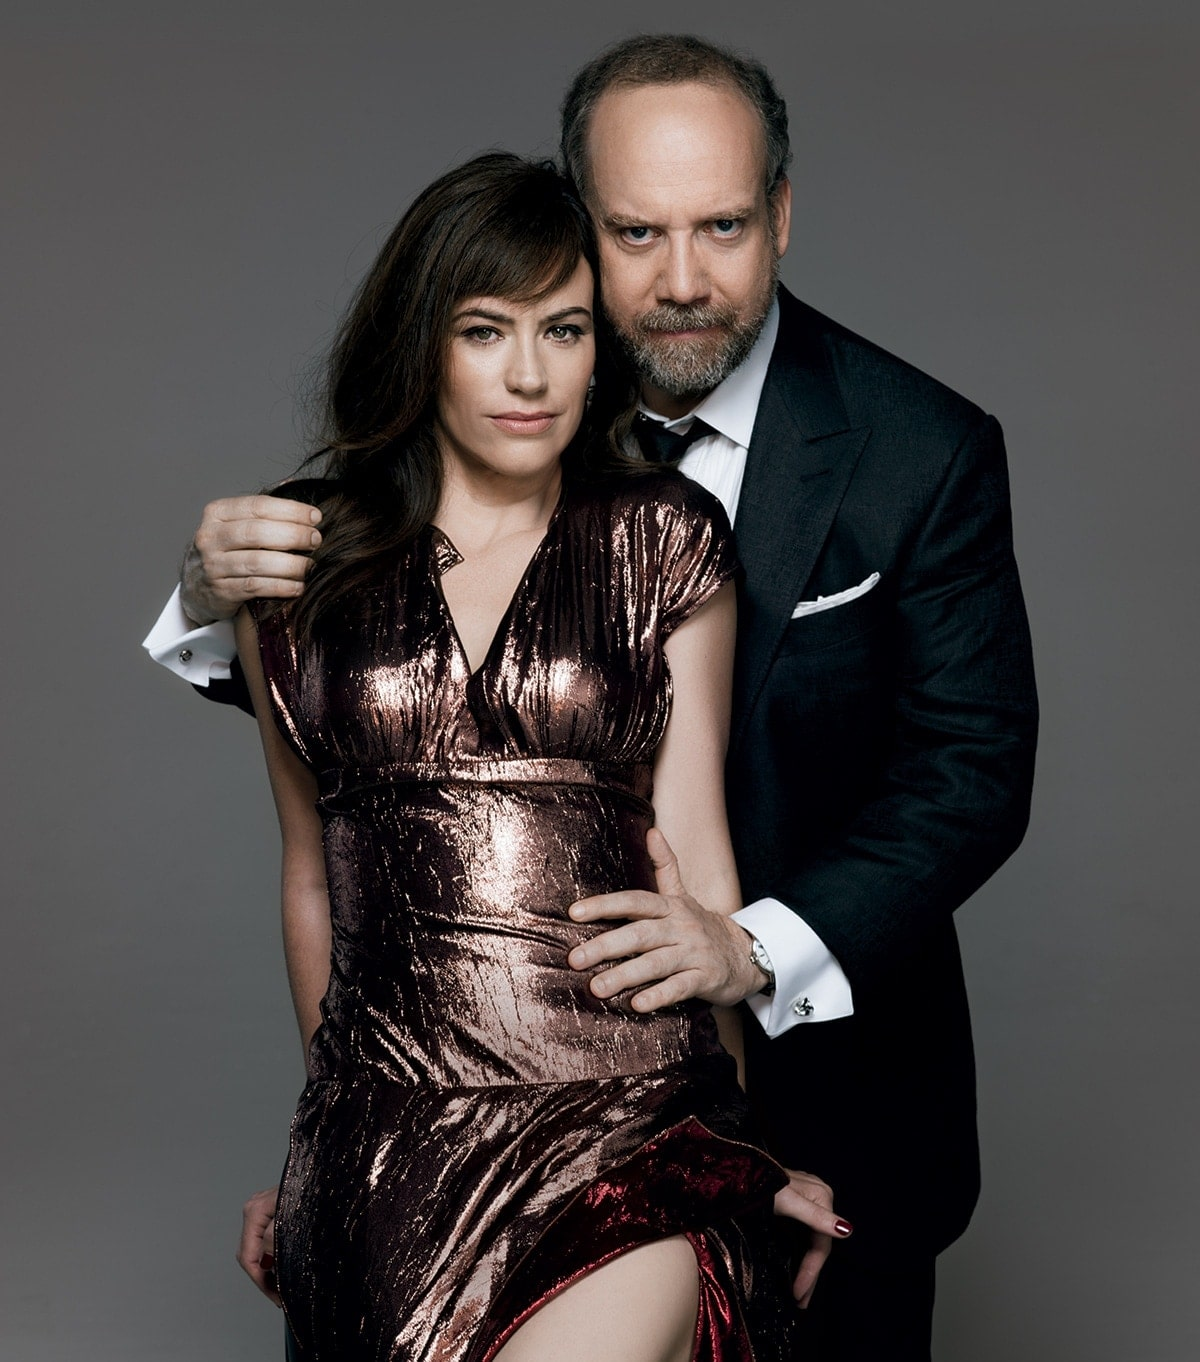 Billions Power Couple Maggie Siff Amp Paul Giamatti On Filming Sex Scenes Amp How They Relax Off